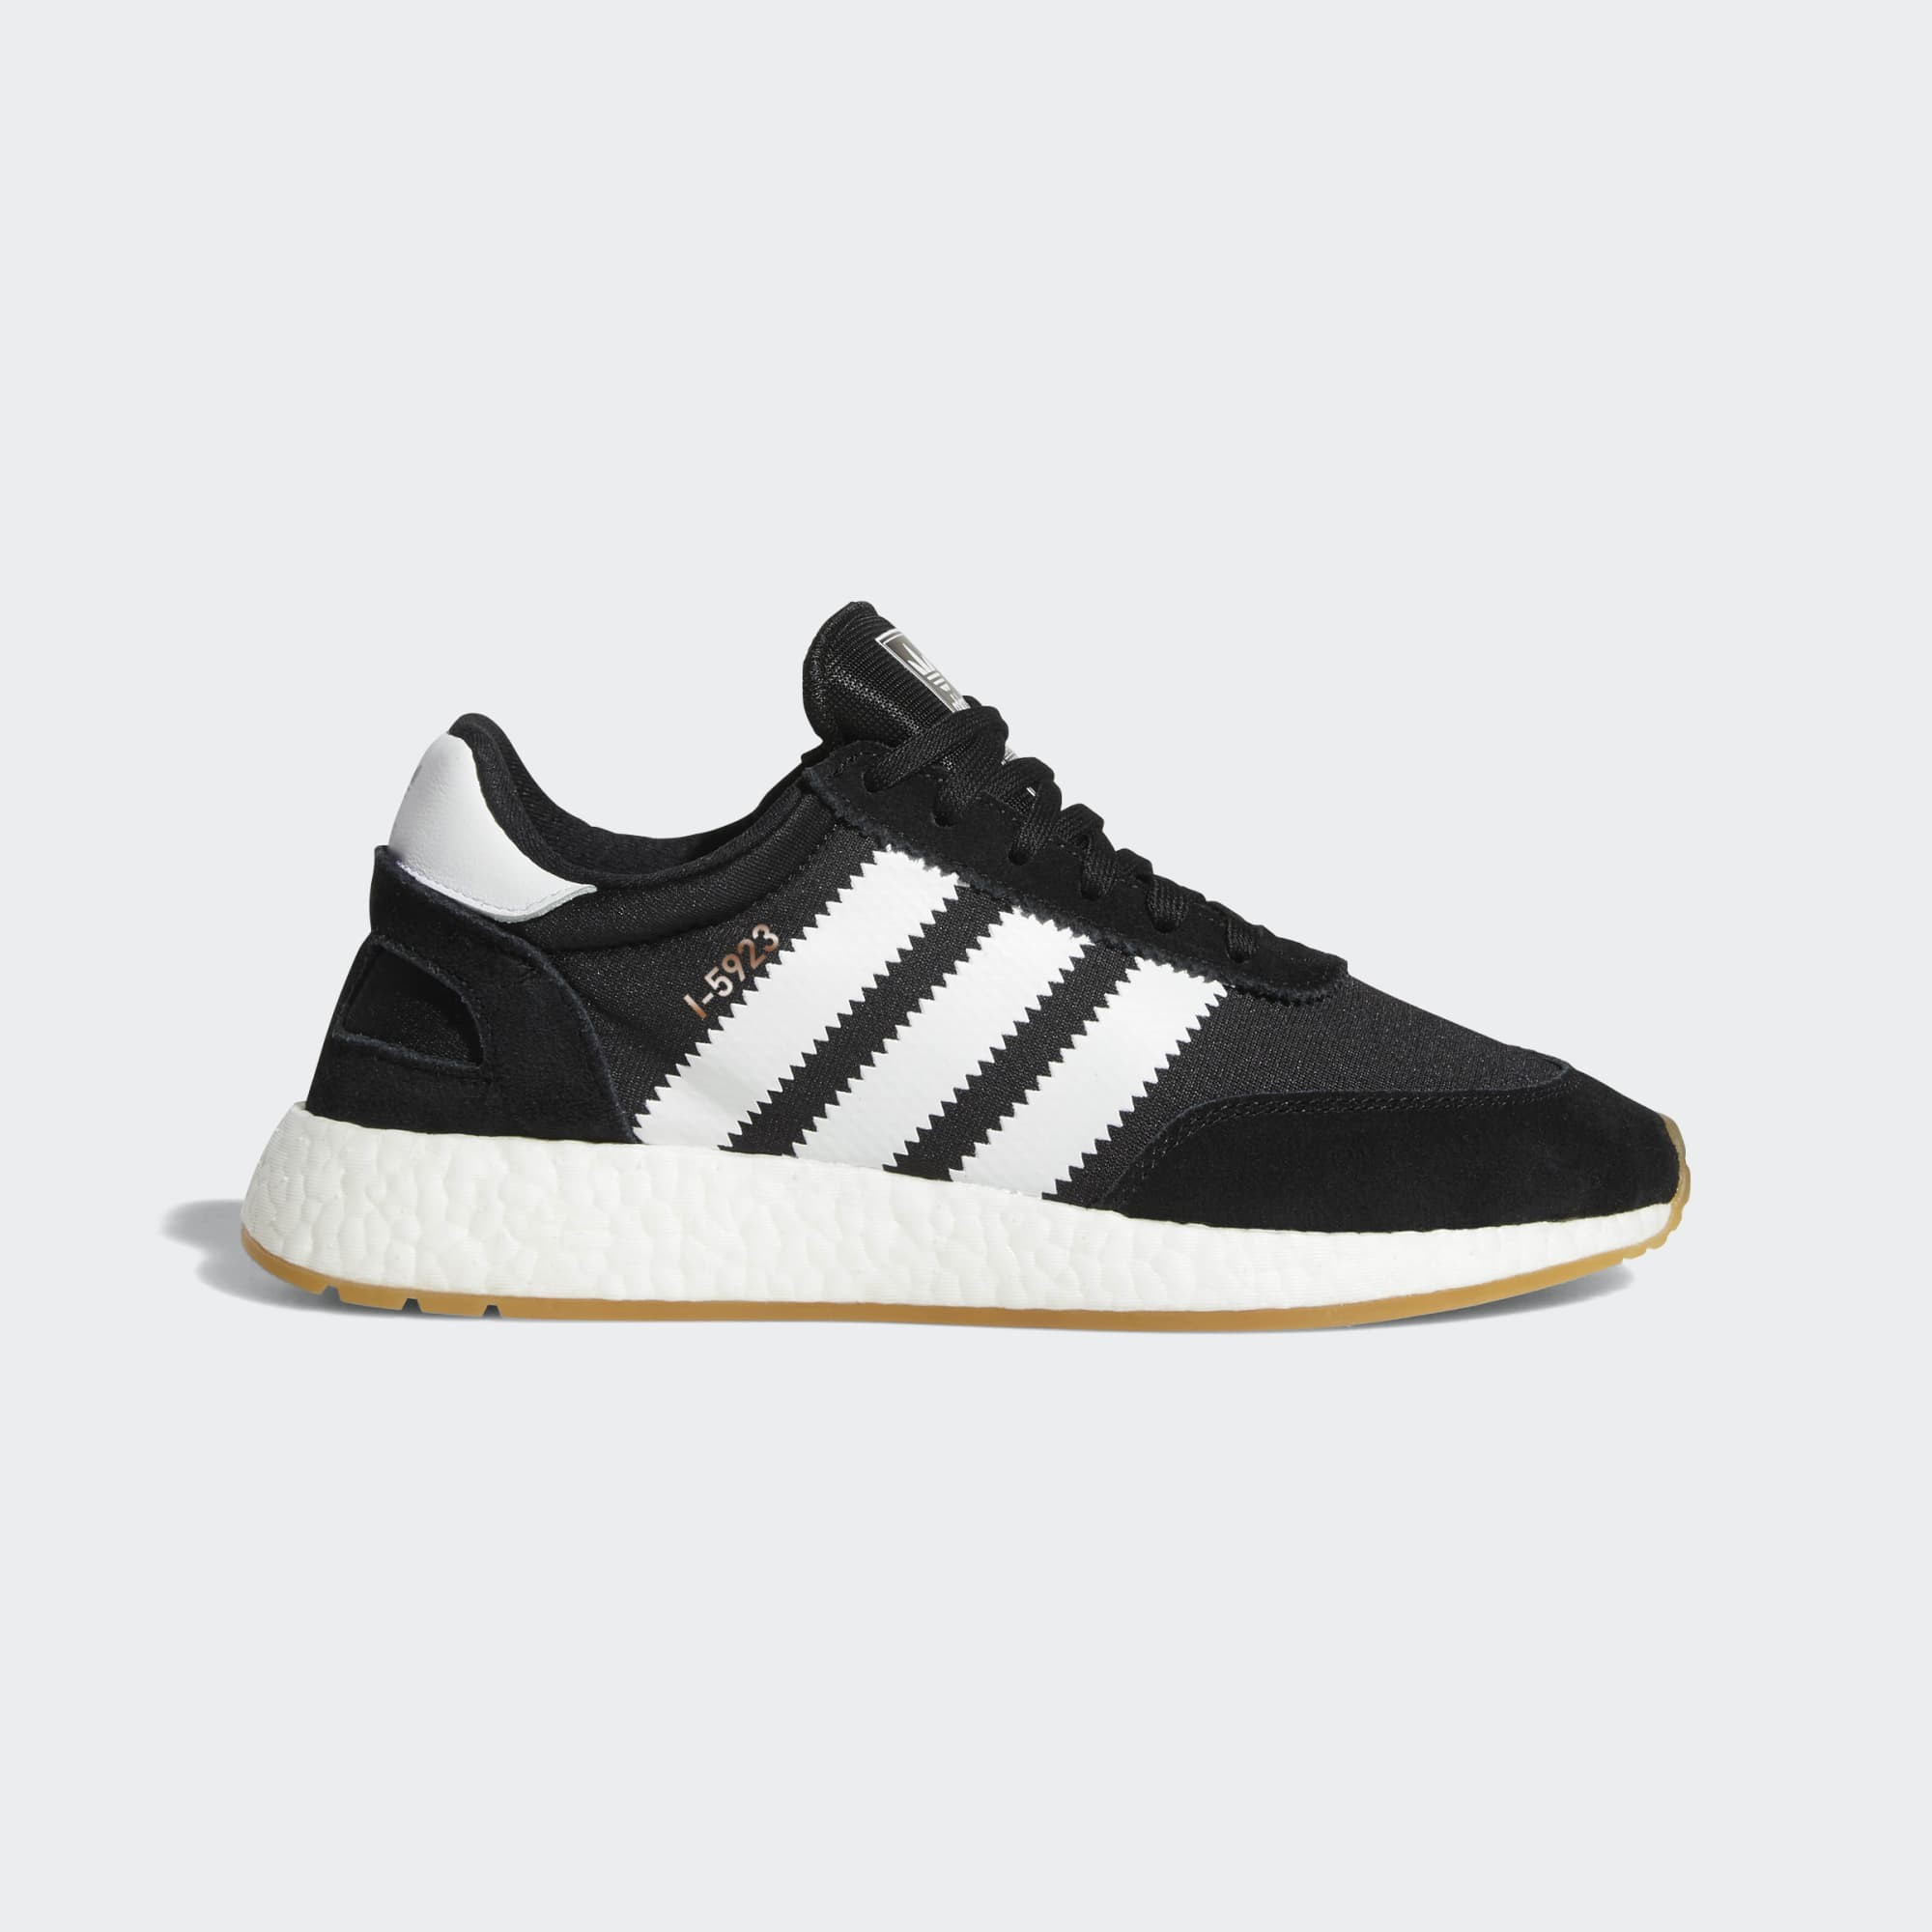 Adidas Iniki Runner Boost Black White Gum BY9727